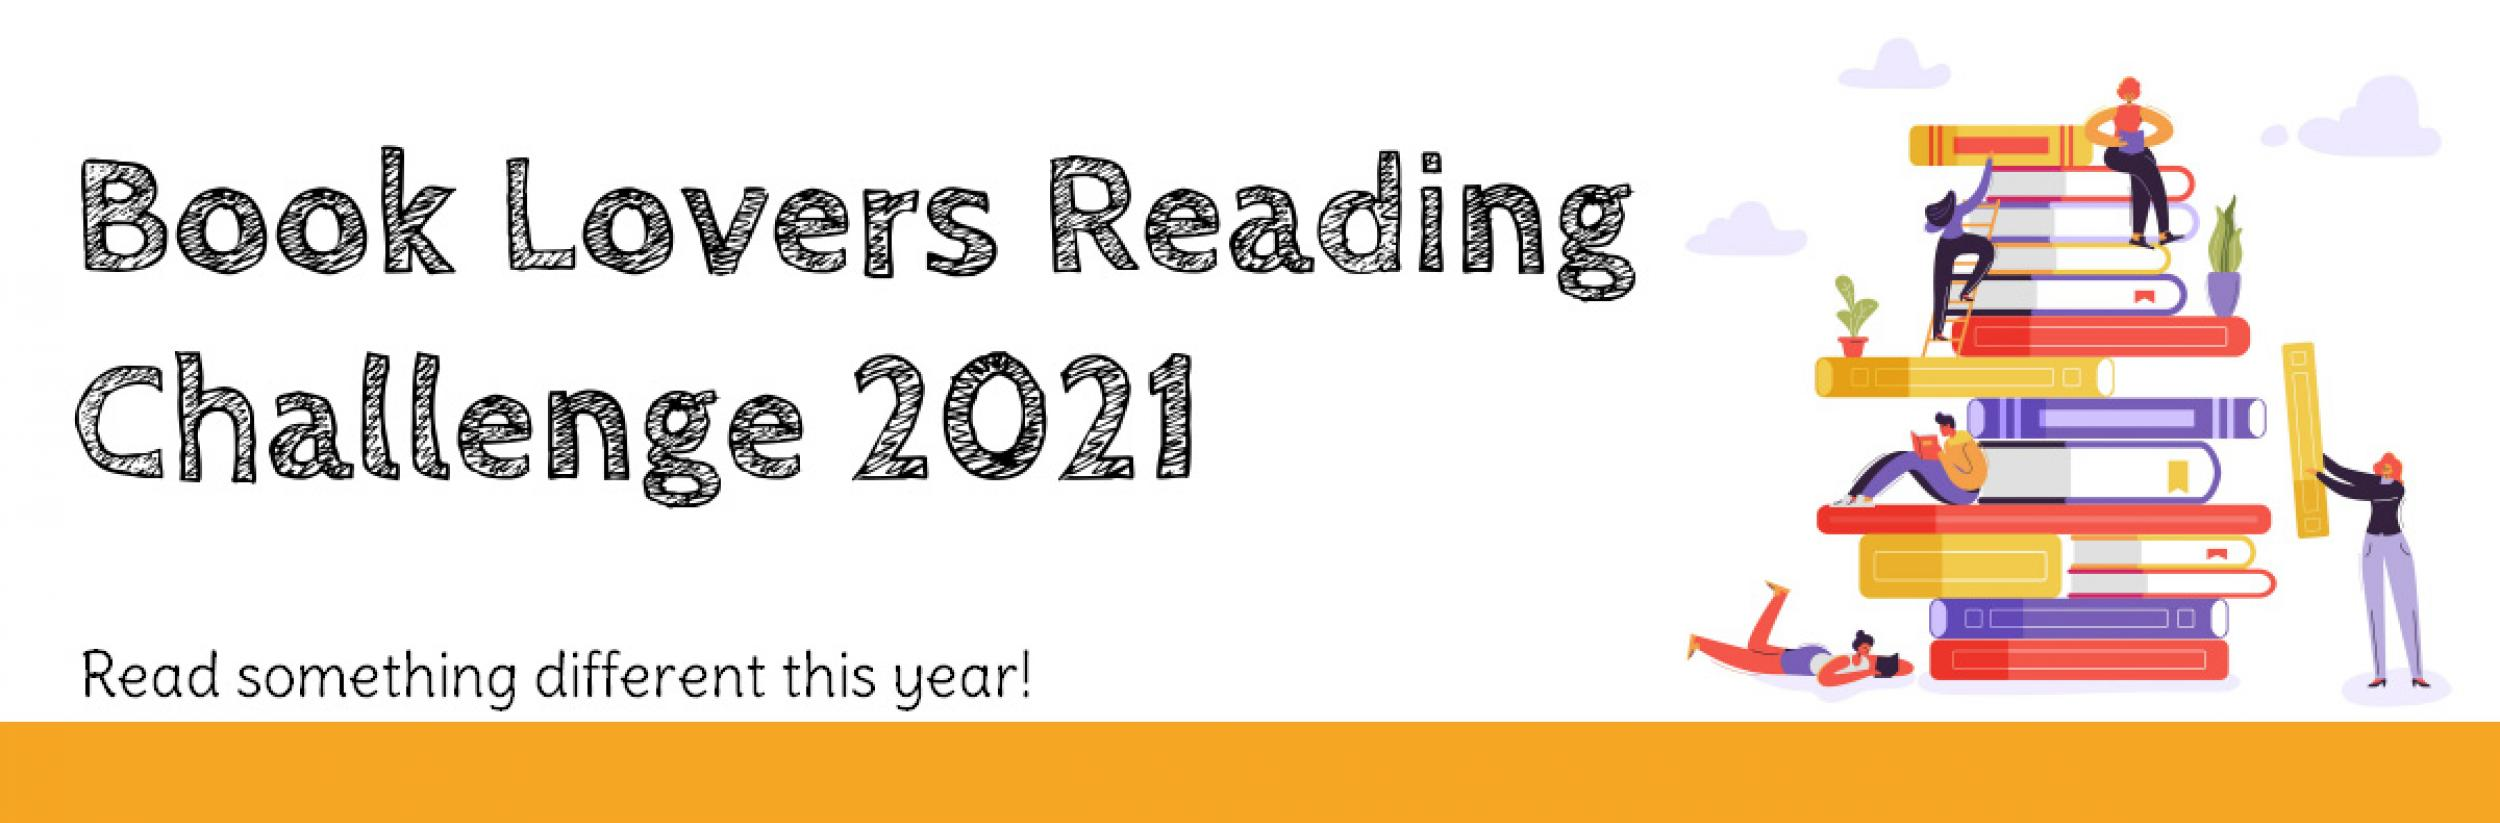 Book Lovers Reading Challenge 2021